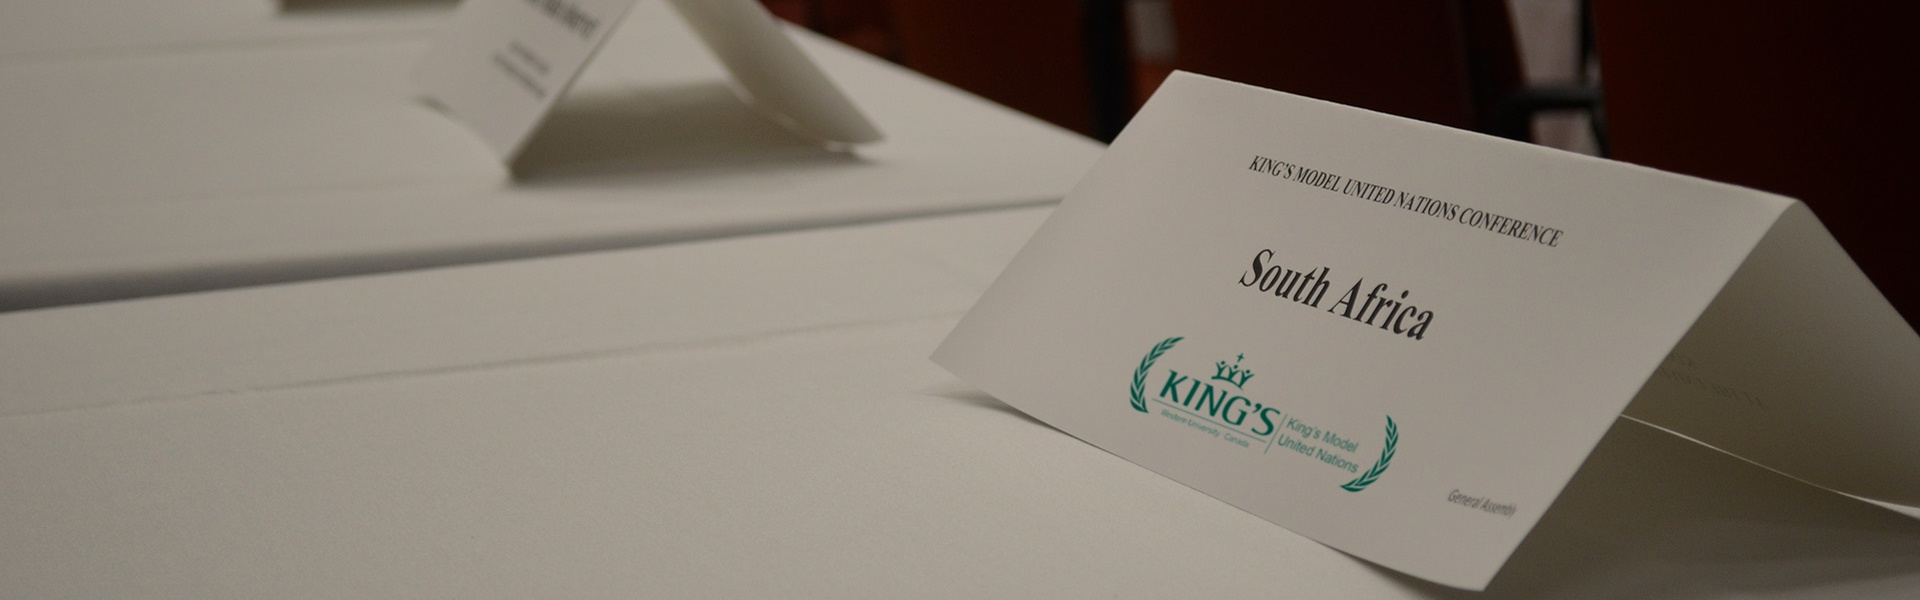 King's Model United Nations (KMUN)